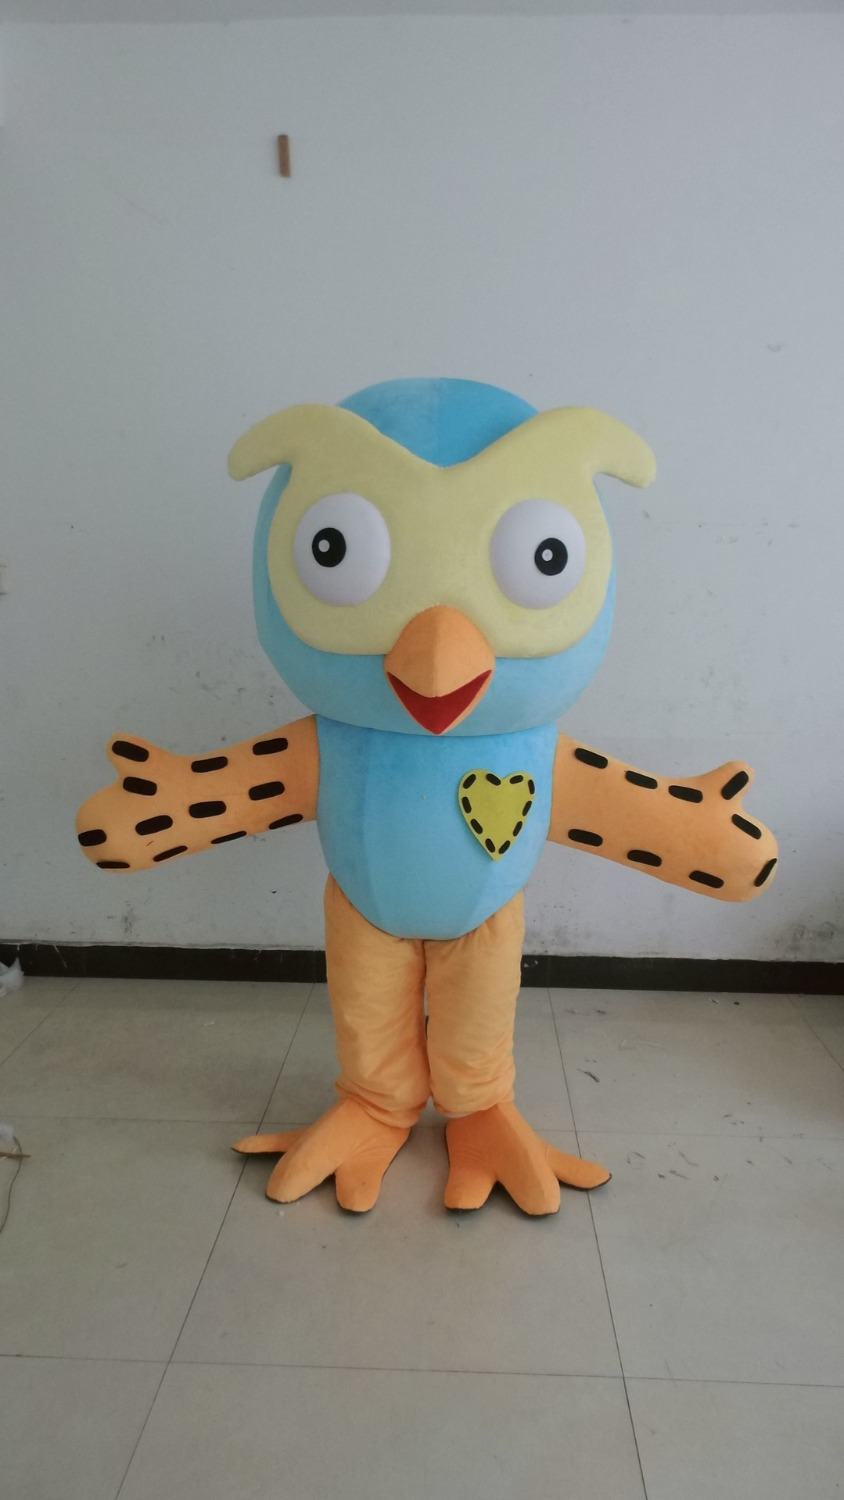 Professional New Style Big Blue Owl Mascot Costume Fancy Dress Adult Size for Halloween party event